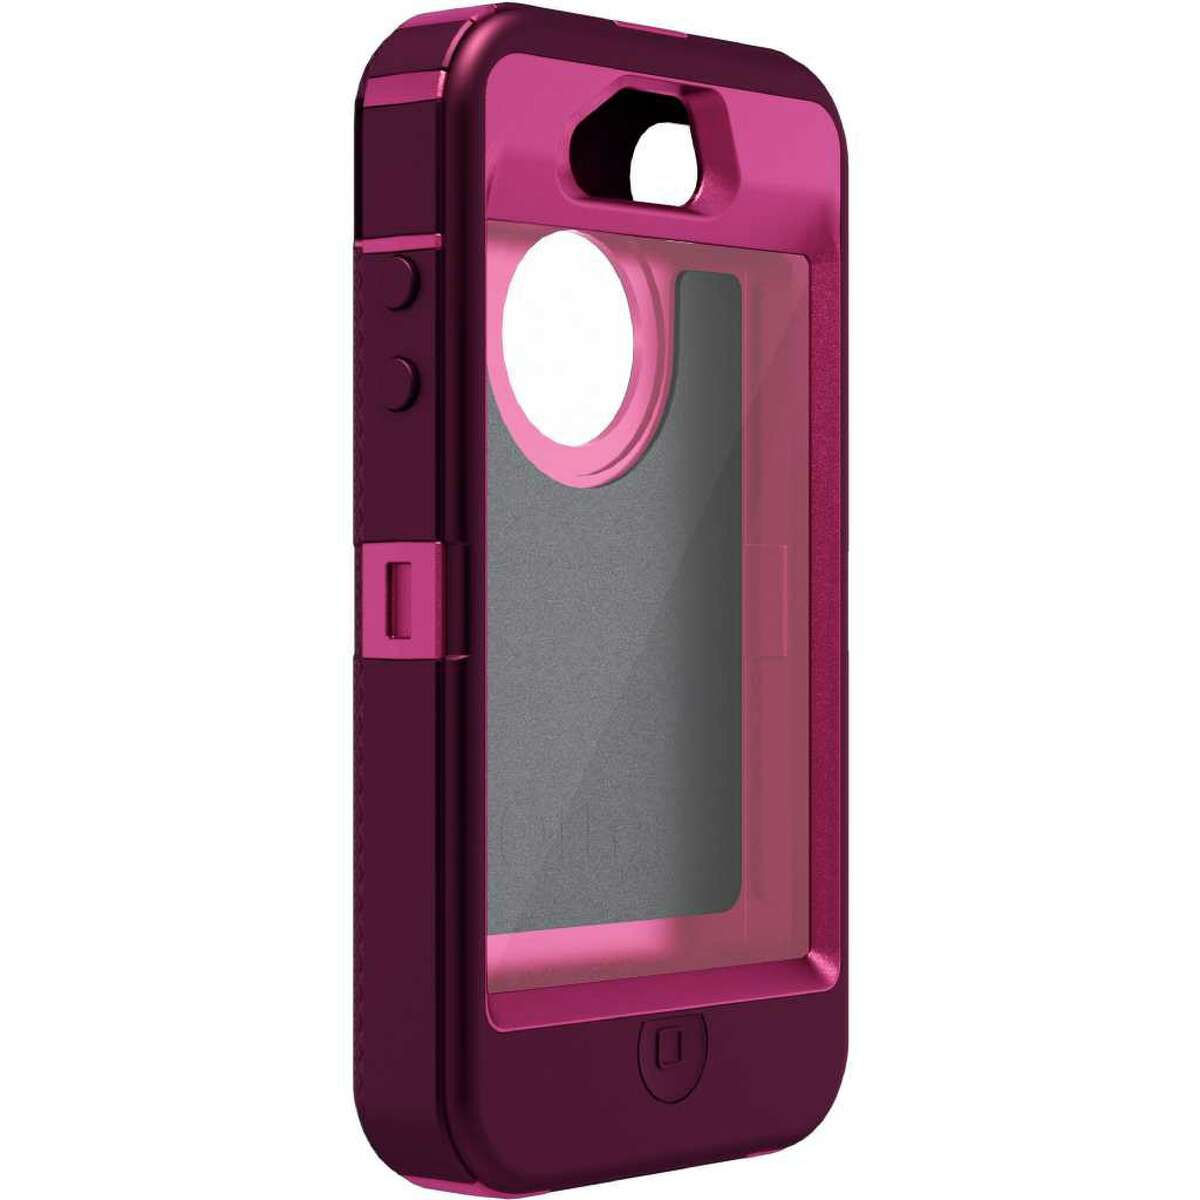 iPhone 4/4S Defender Series case by OtterBox. (side view) Color: Peony Pink PC / Deep Plum Slip Cover